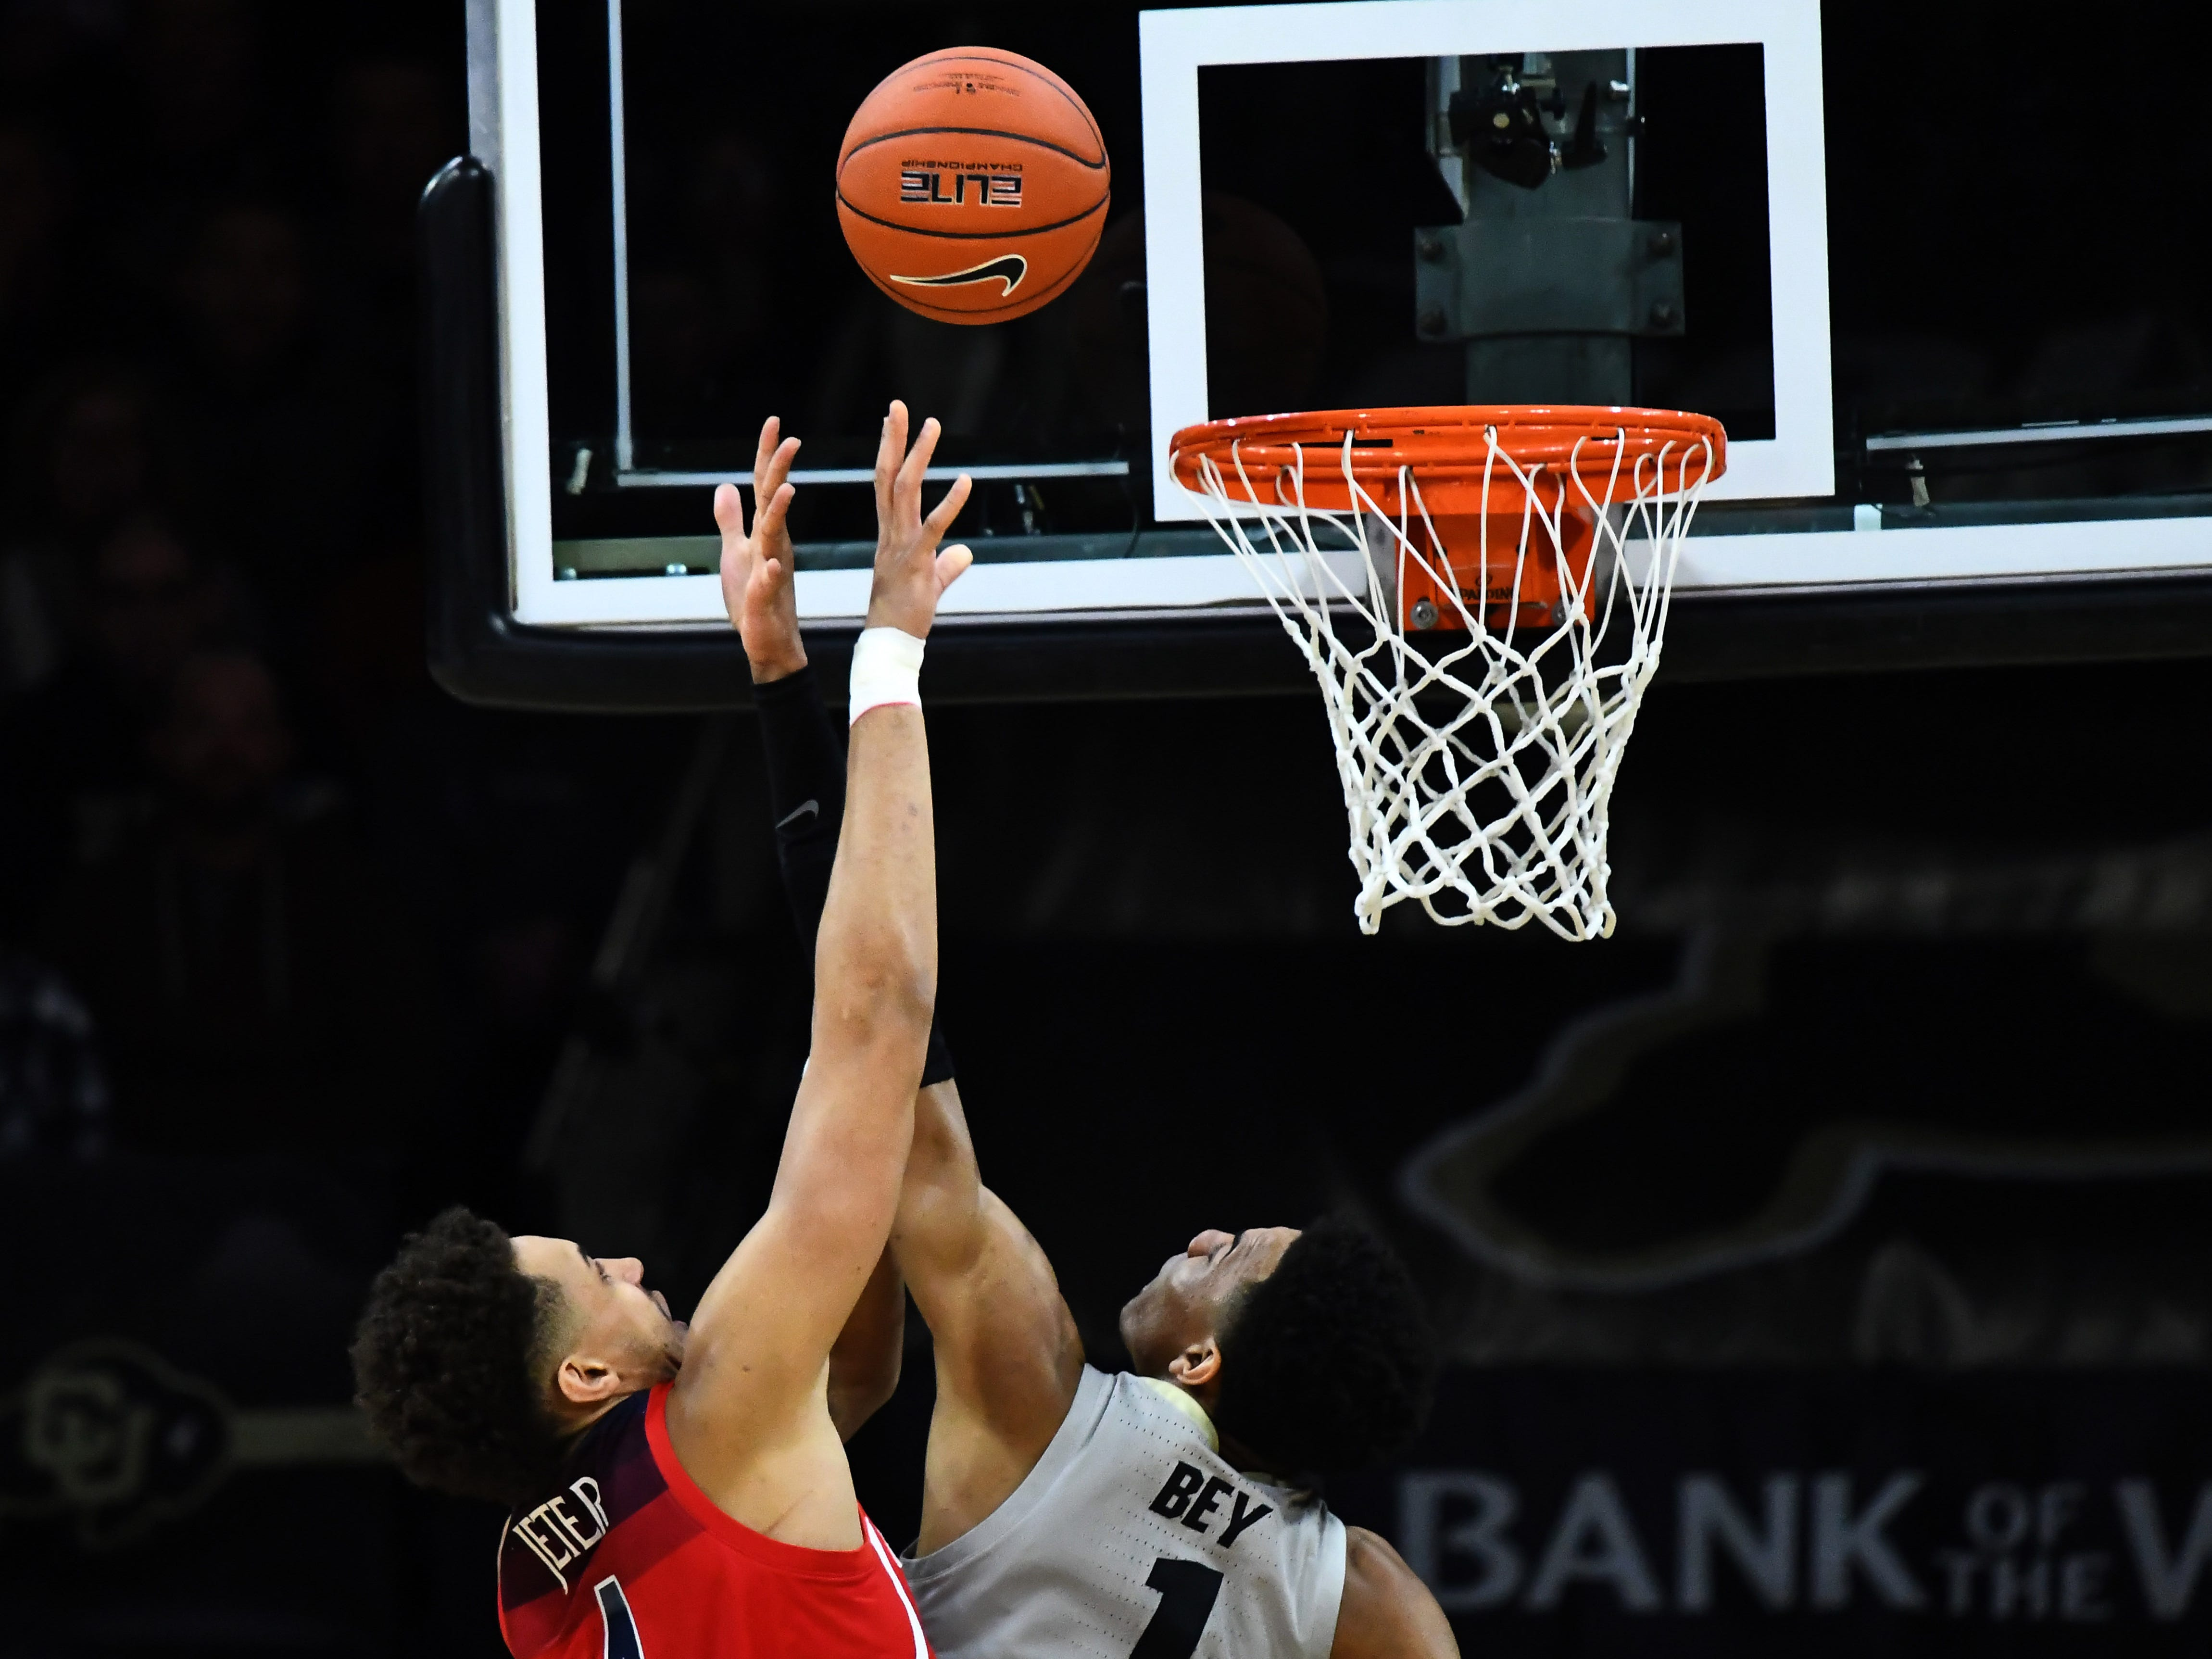 Feb 17, 2019; Boulder, CO, USA; Arizona Wildcats center Chase Jeter (4) shoots over Colorado Buffaloes guard Tyler Bey (1) in the first half at the Coors Events Center. Mandatory Credit: Ron Chenoy-USA TODAY Sports